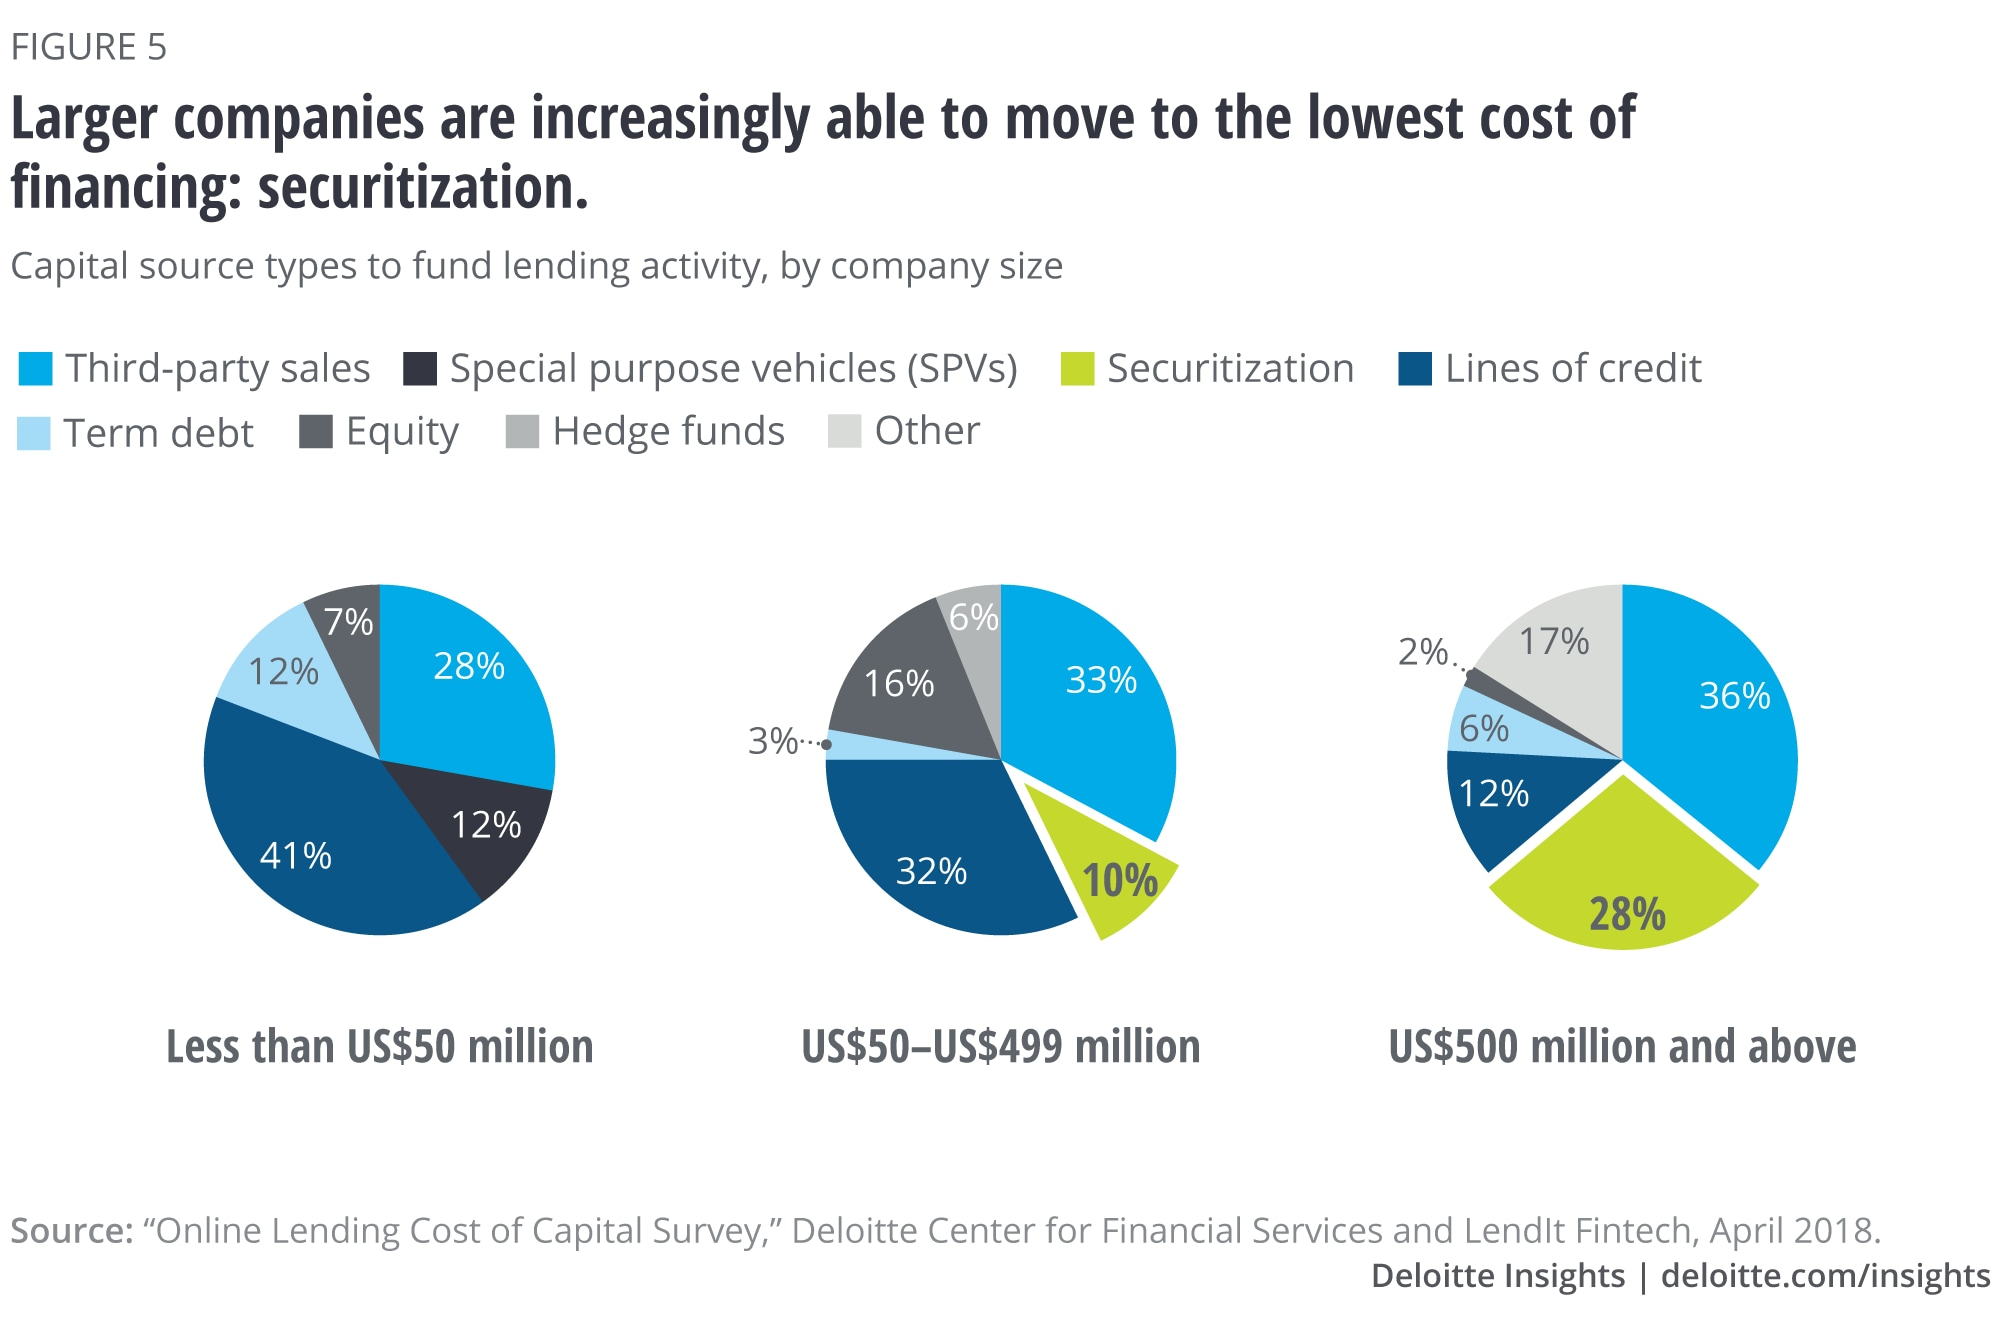 Larger companies are increasingly able to move to the lowest cost of financing: securitization